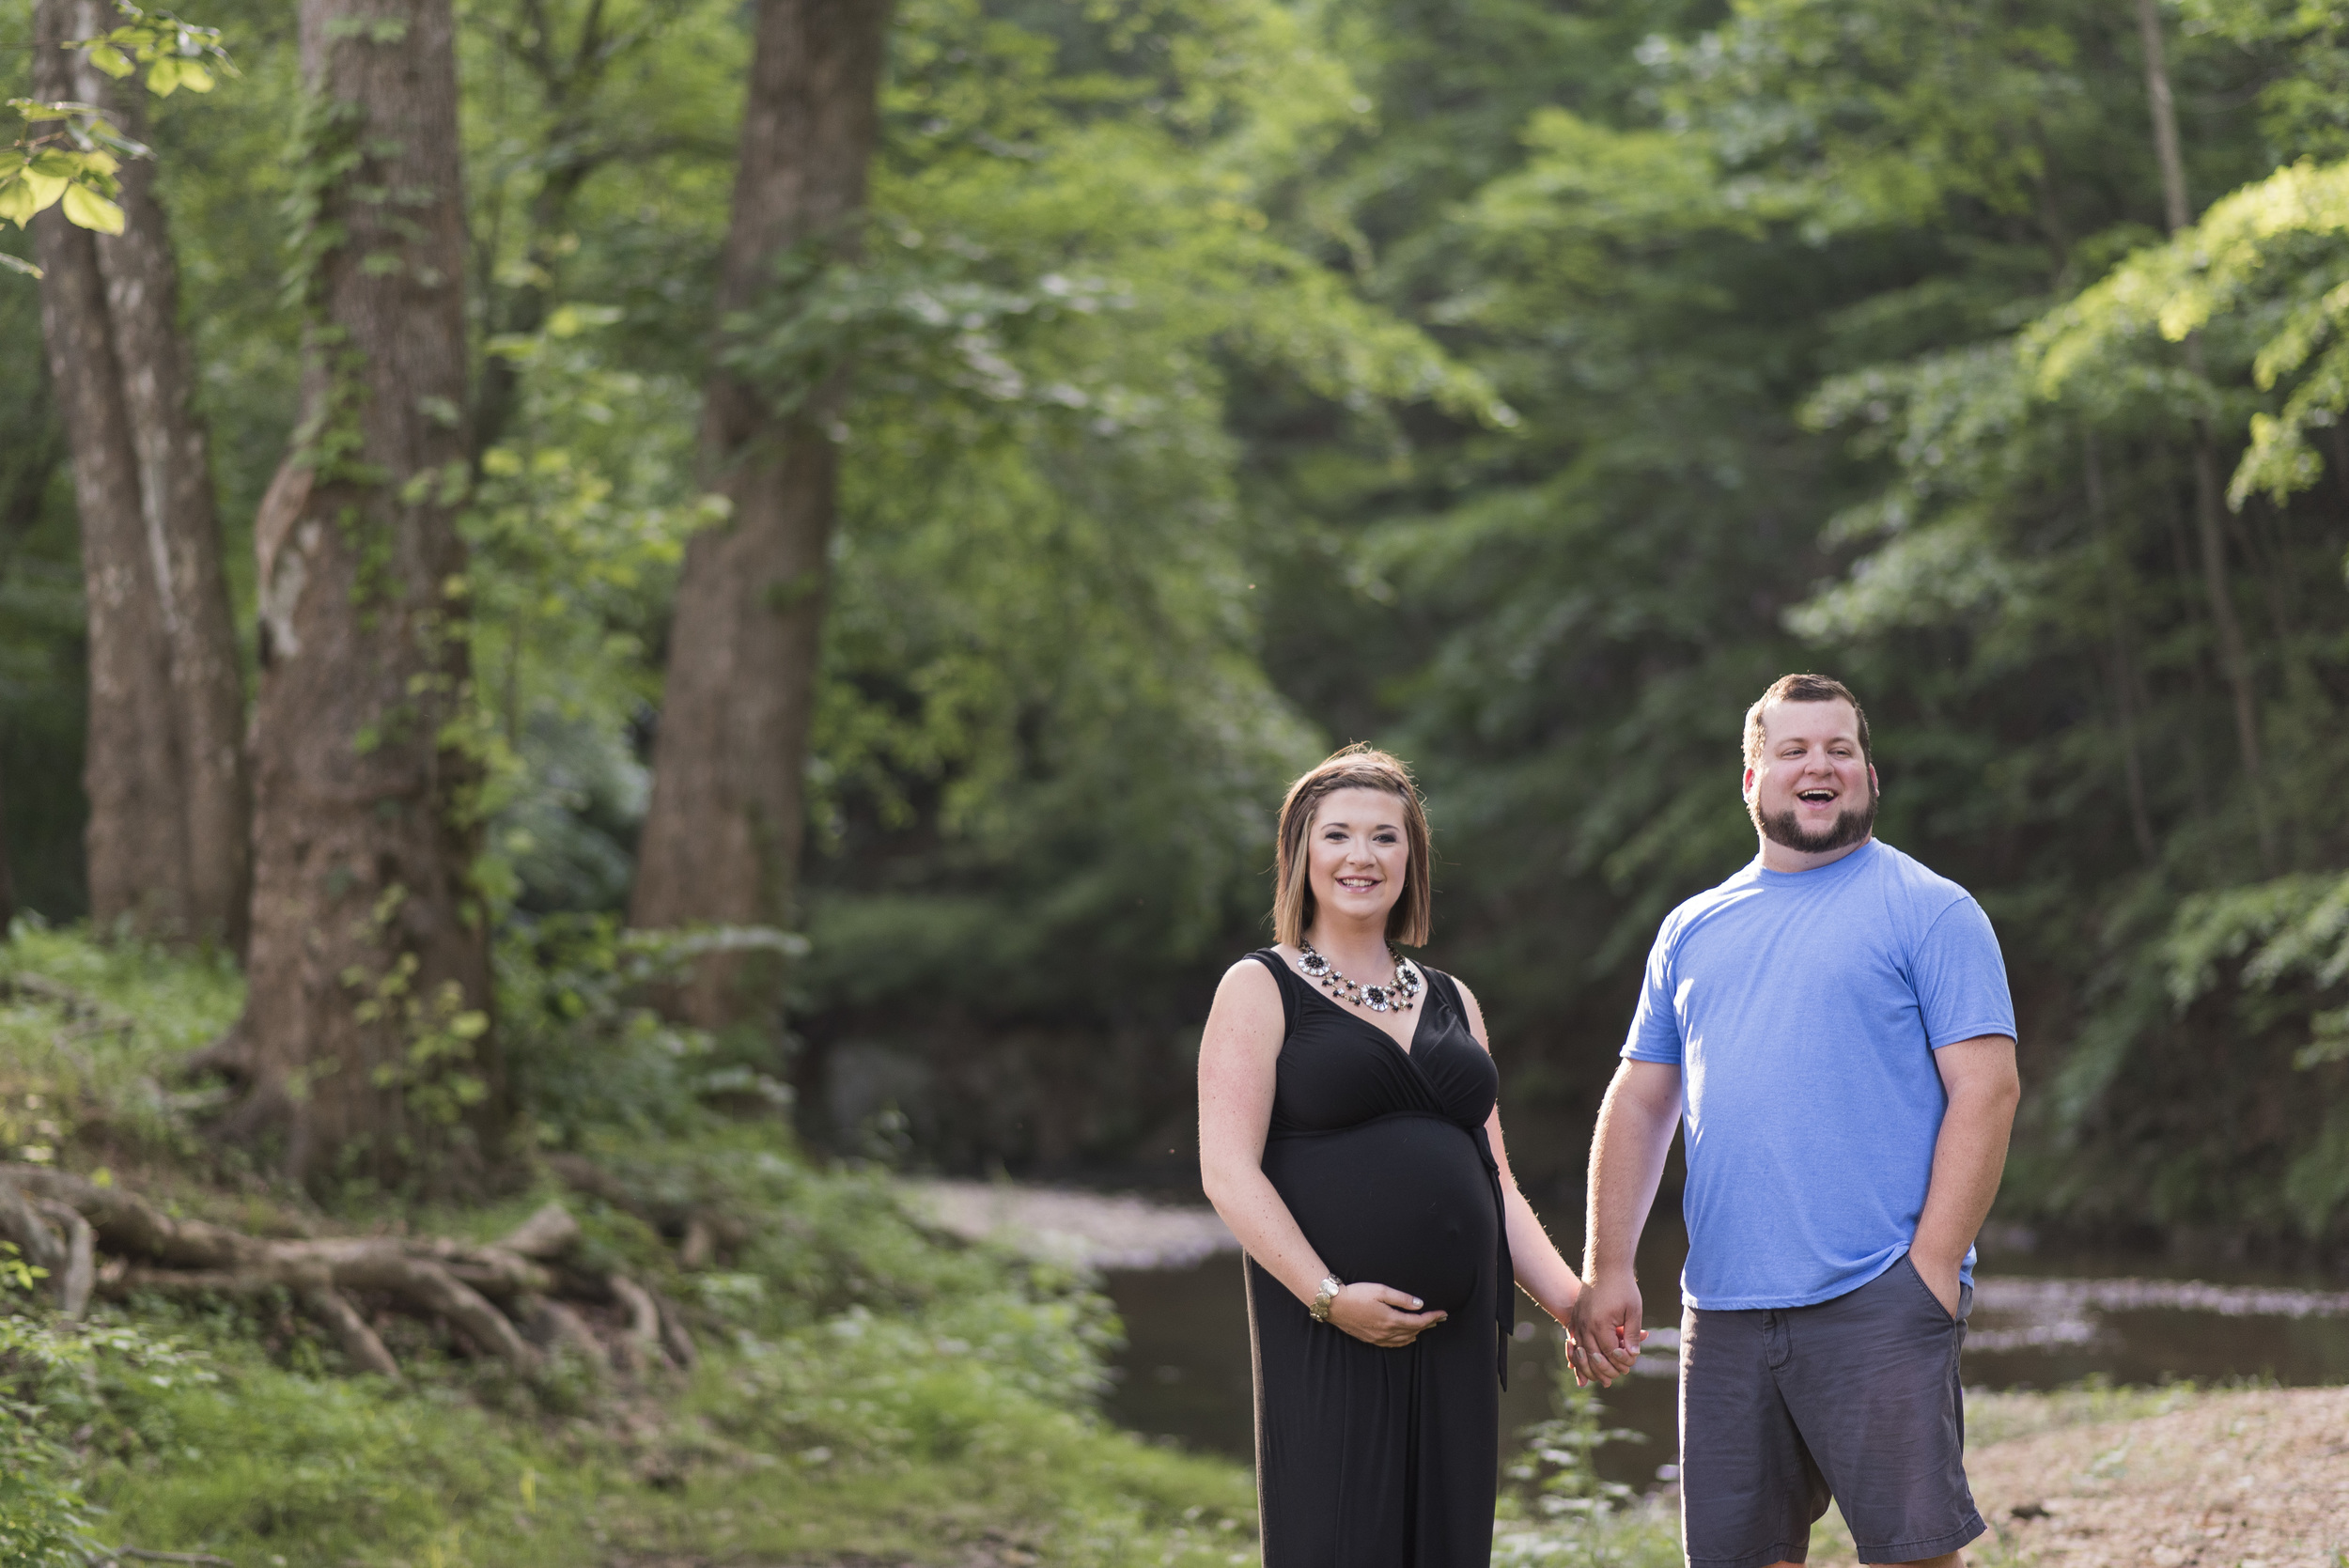 Maternity_Session_Water_Lynchburg_VA20150625_0014.jpg